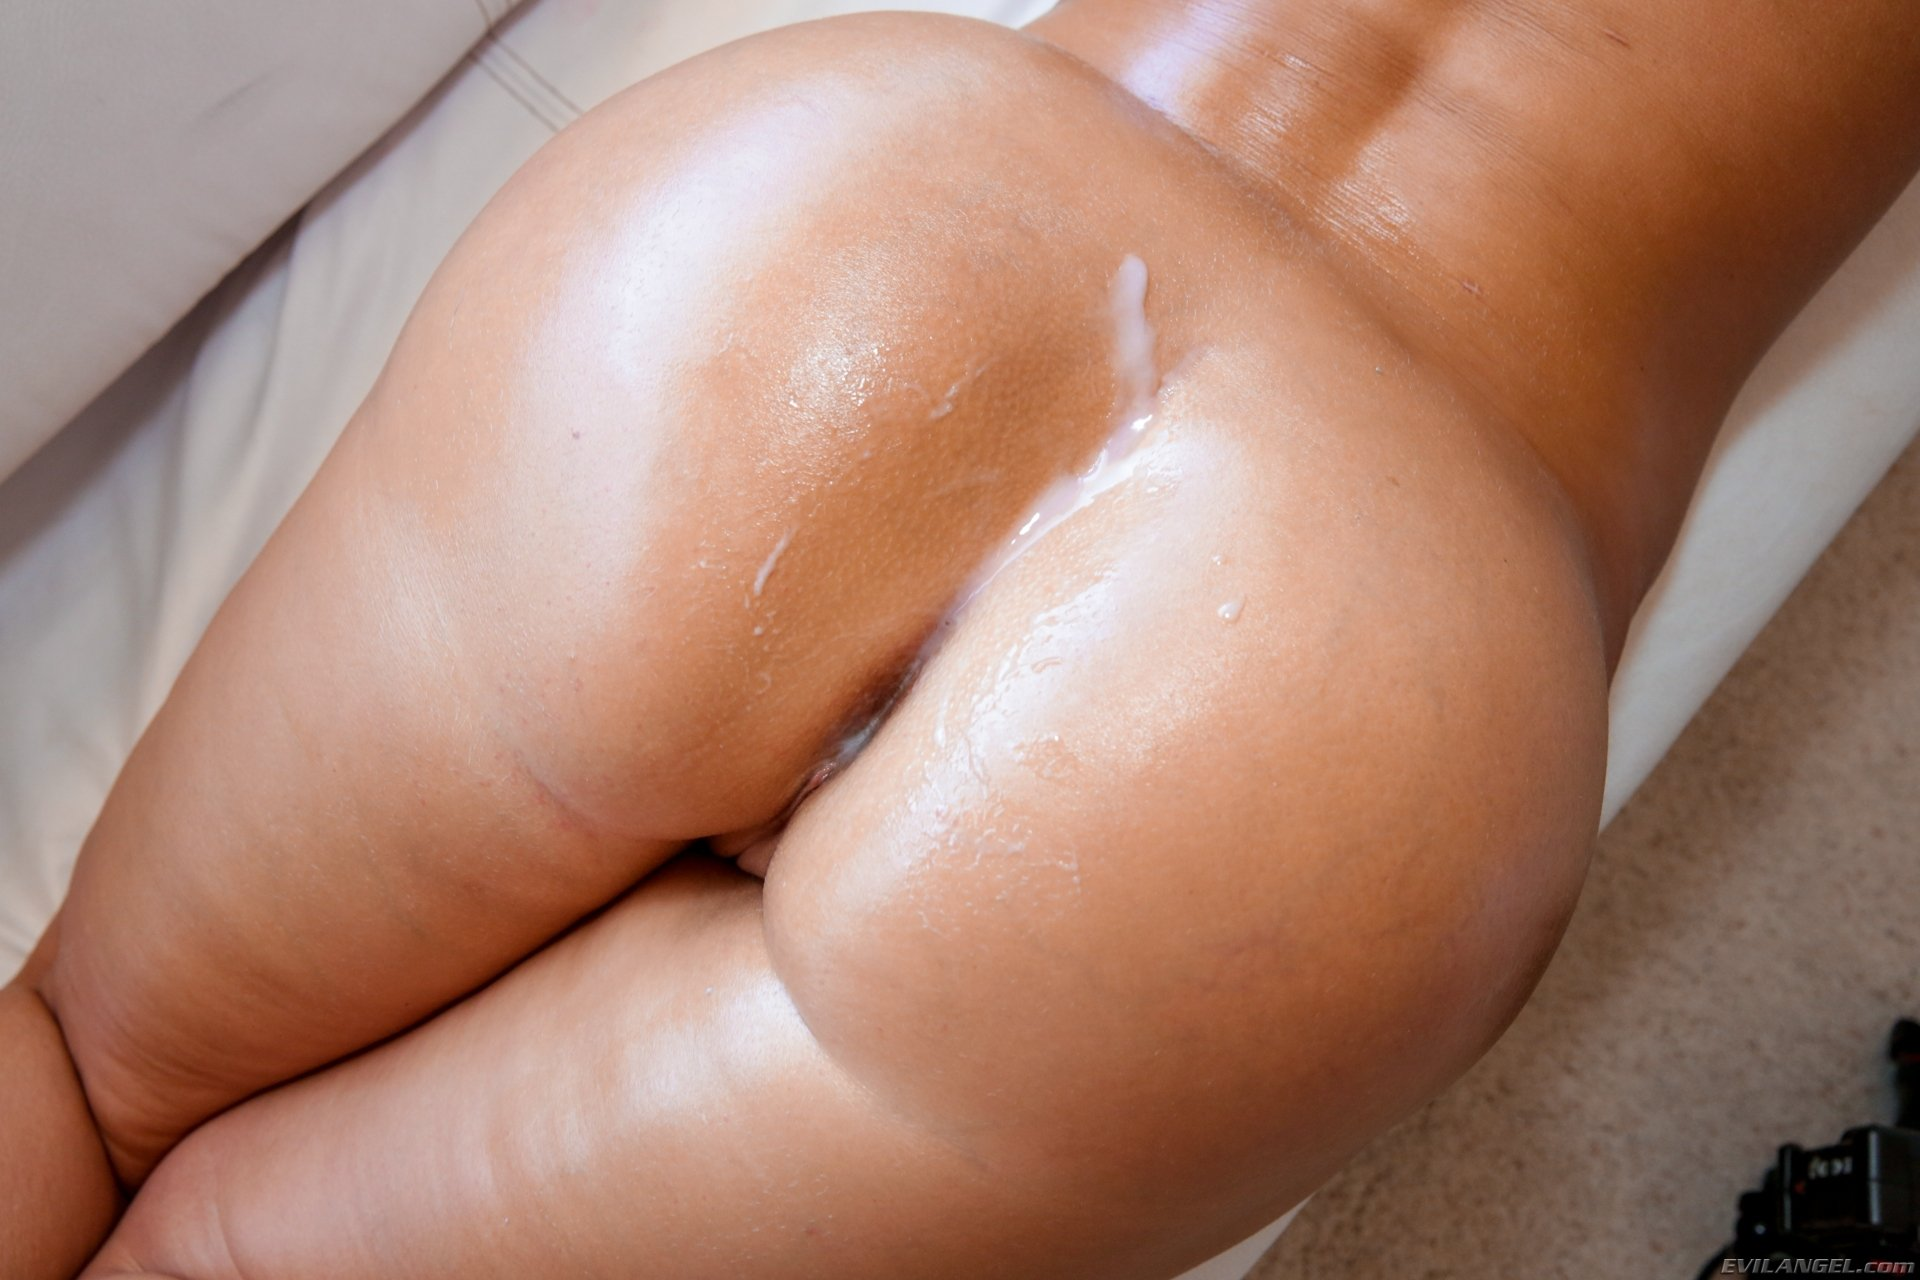 Tagal    reccomended tonights girlfriend site